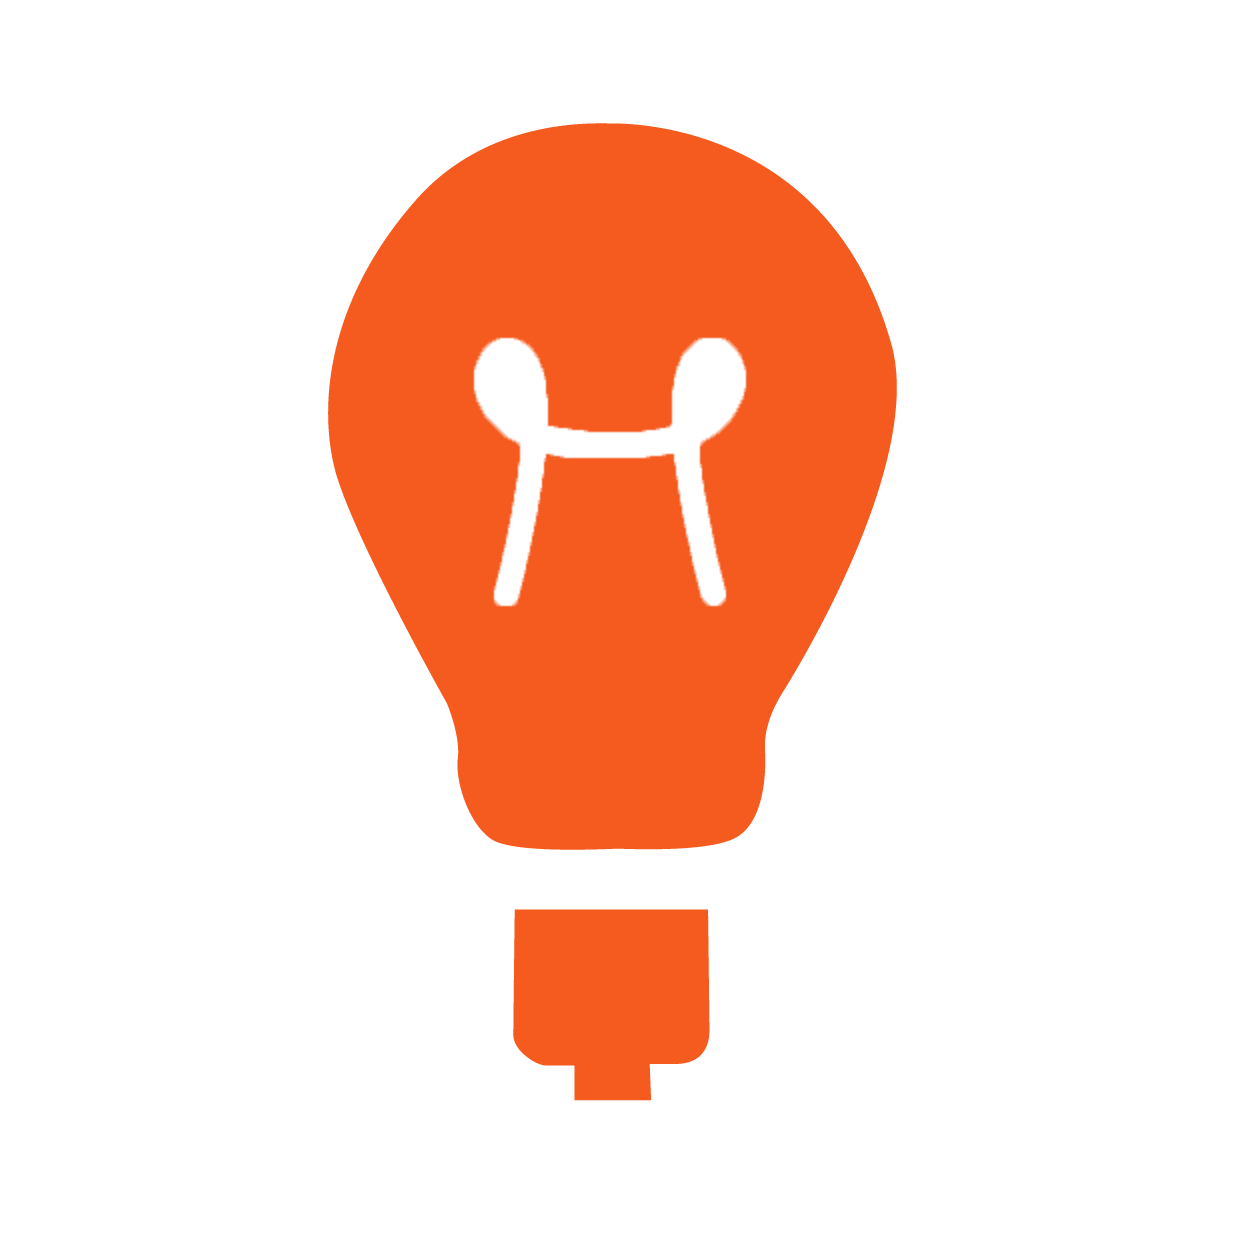 1250x1250 Free Light Bulb Icons, Hanslodge Clip Art Collection